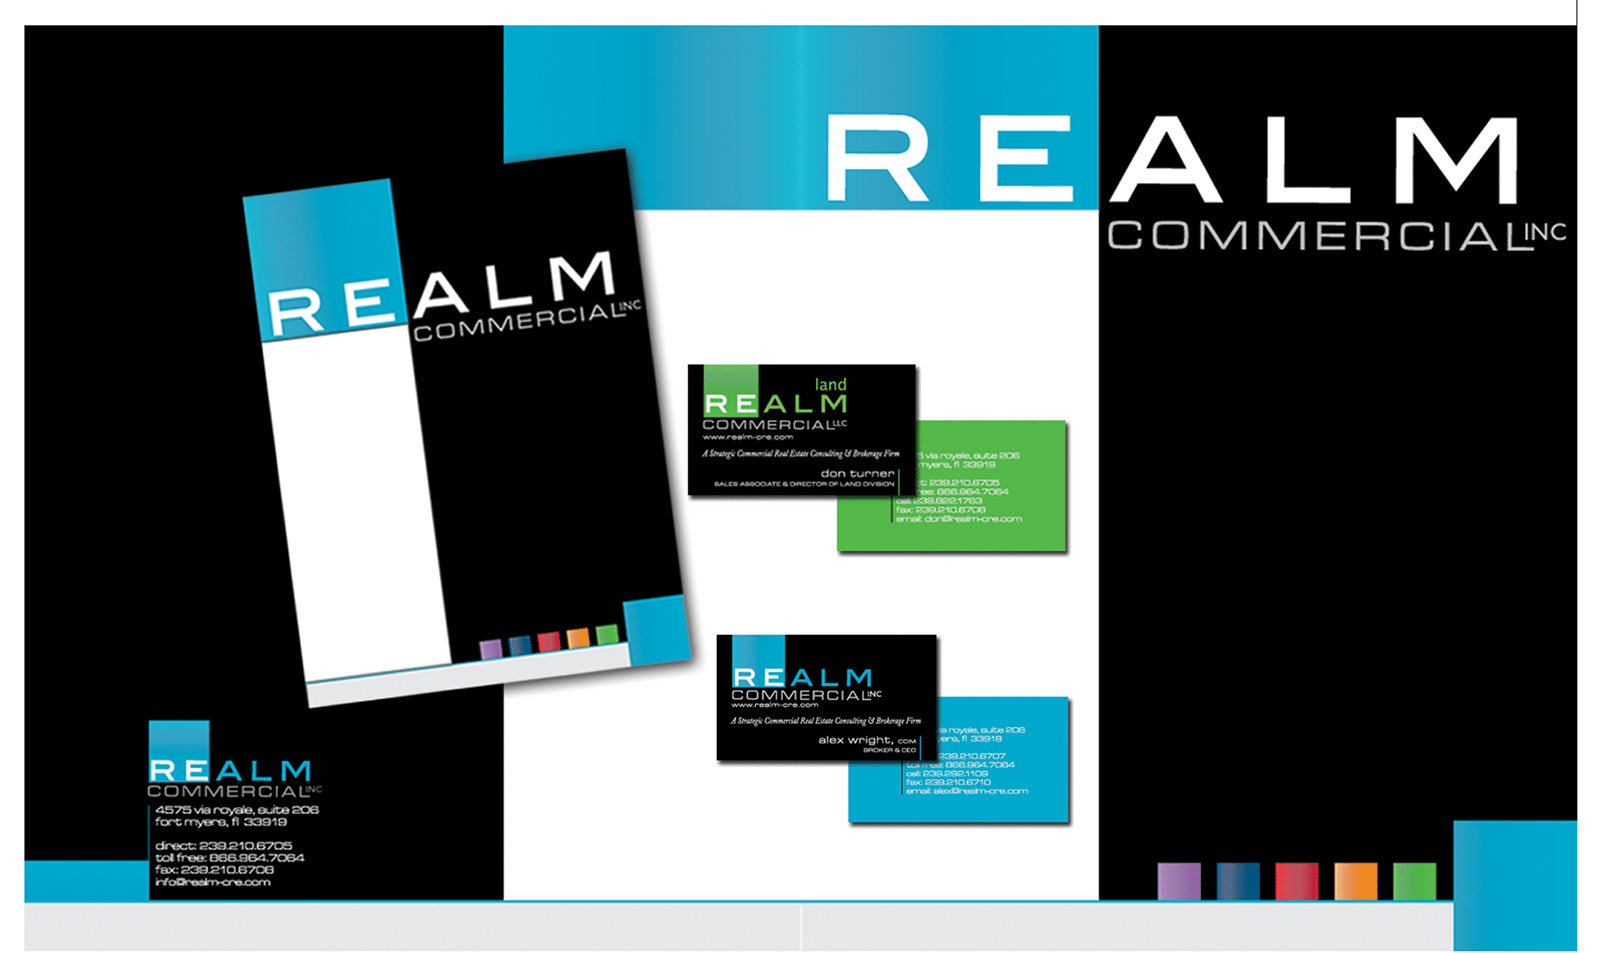 Business Marketing Agency - B2B Integrated Business Marketing Communications for Realm Commercial